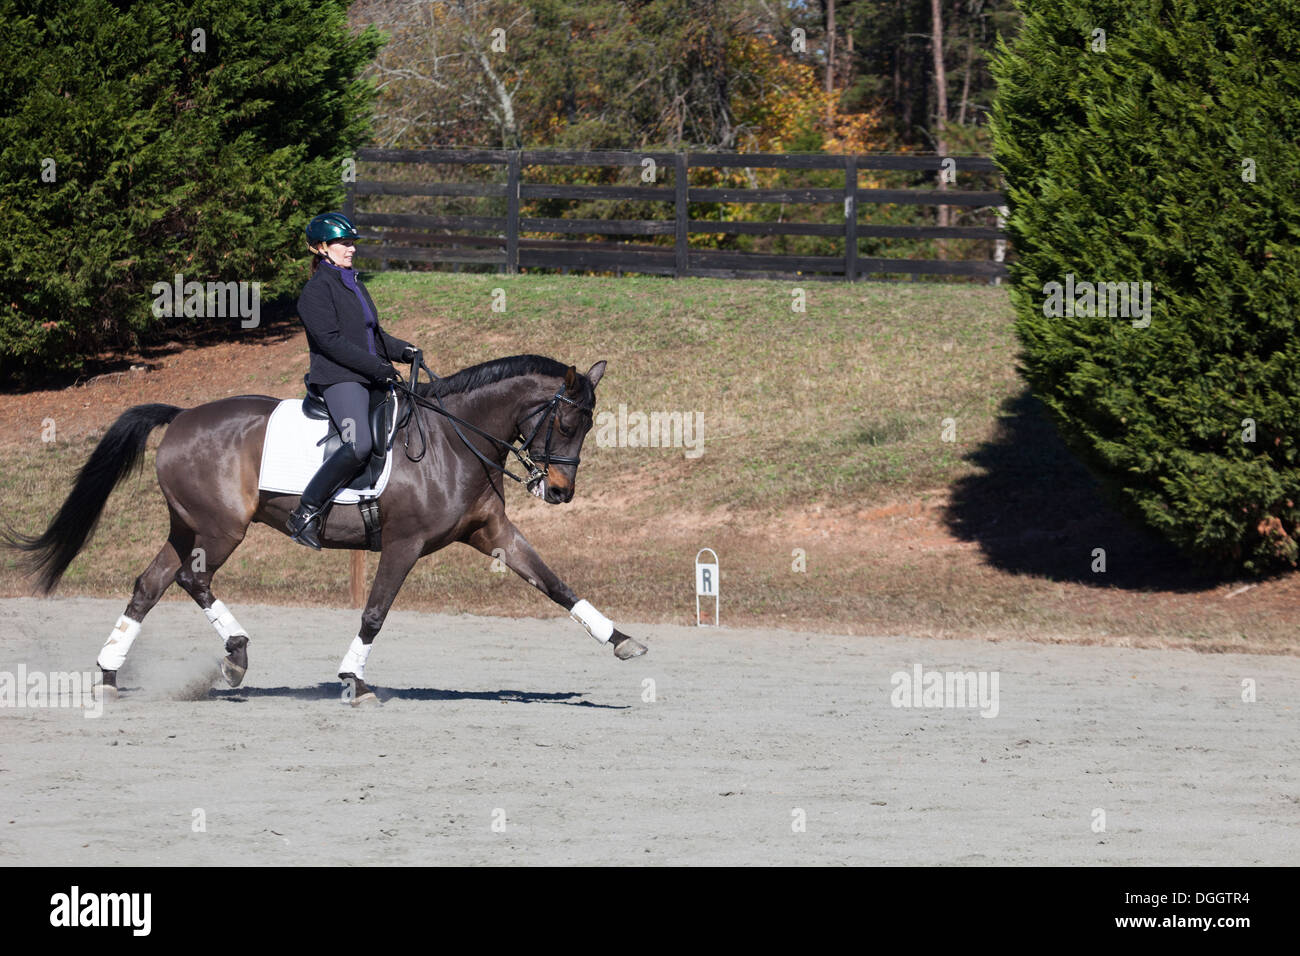 Woman riding dressage horse at extended trot - Stock Image